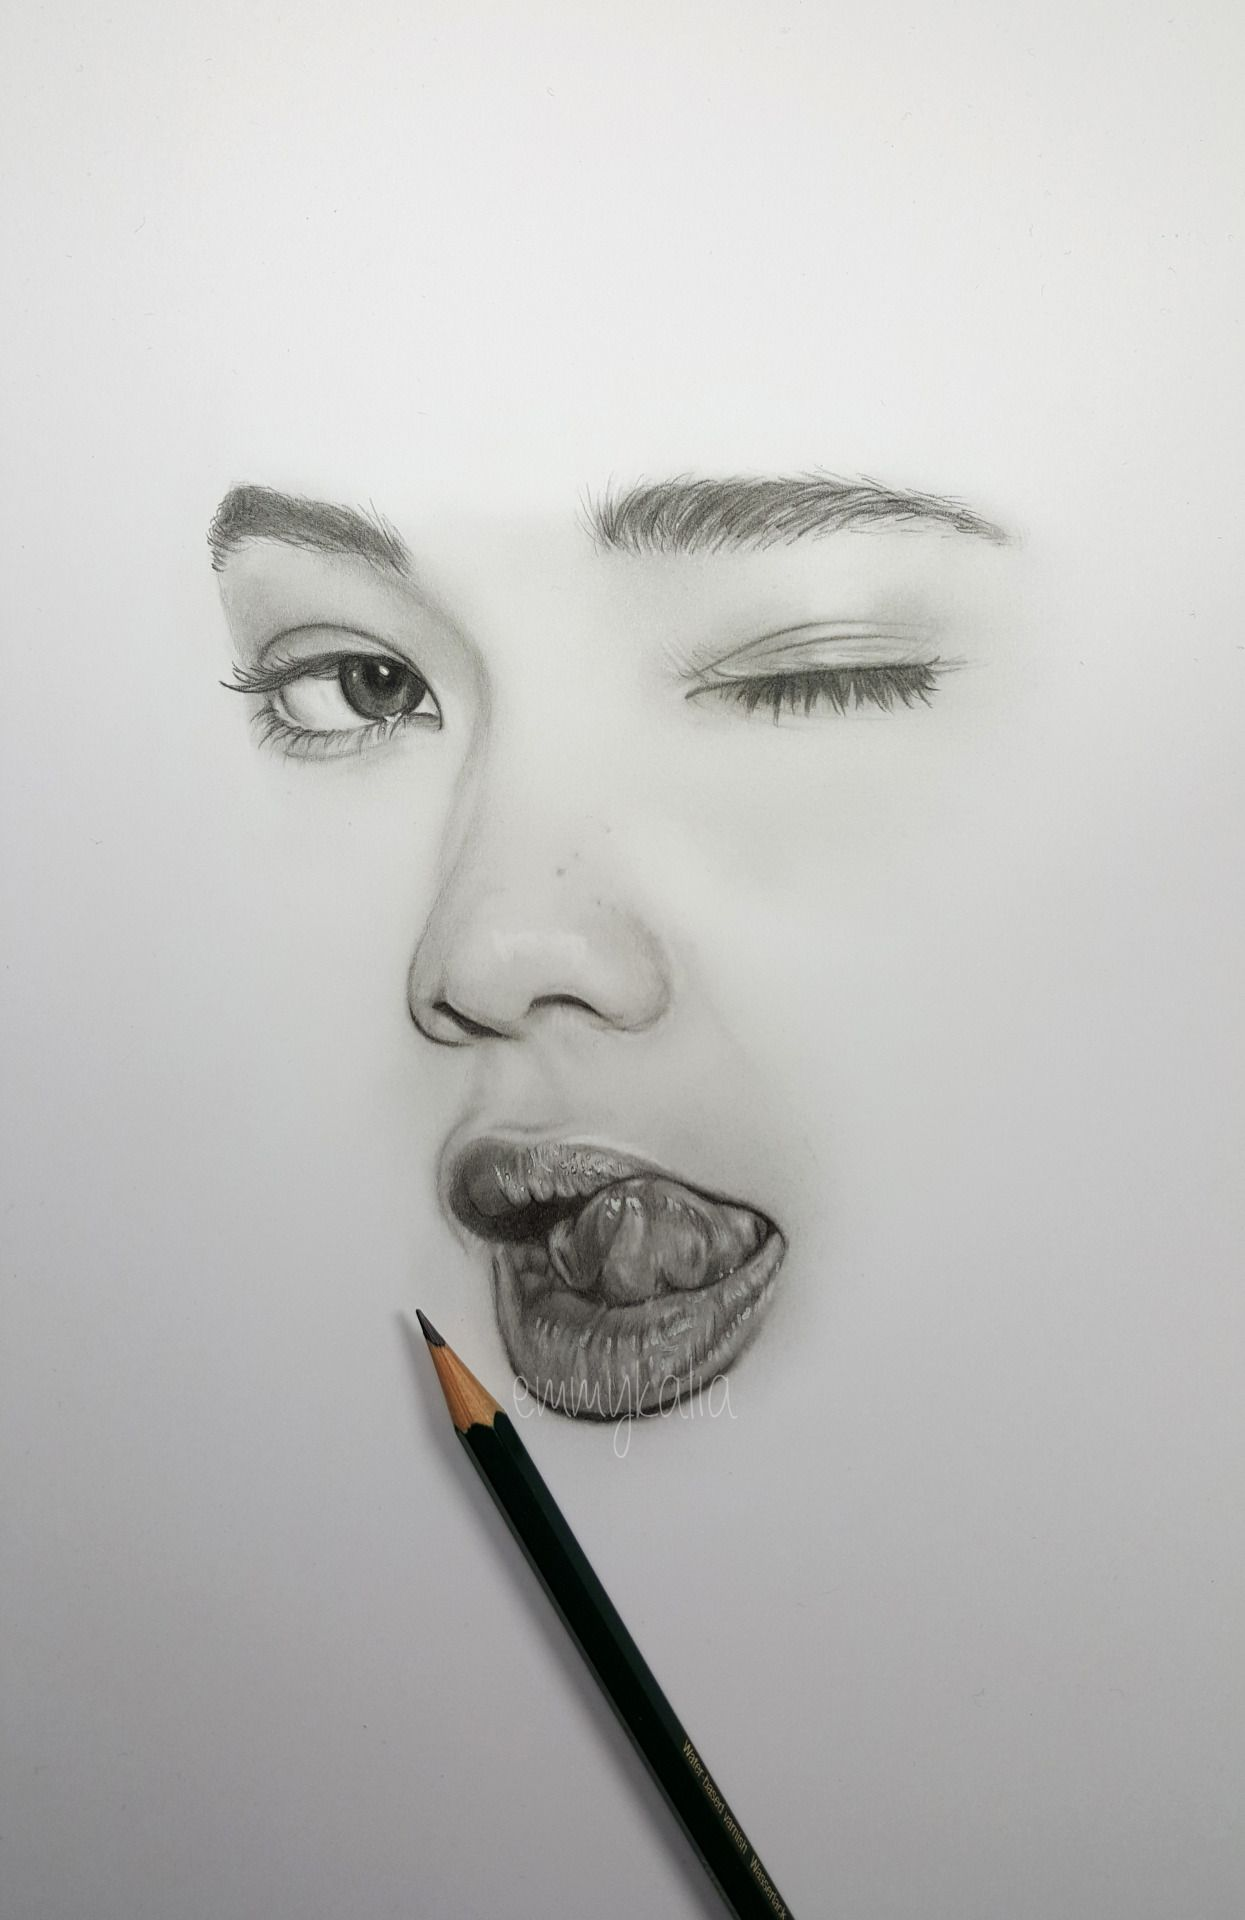 Drawing a minimalistic face ashley moore with faber castell graphite pencils watch the video on my youtube channel emmykalia1